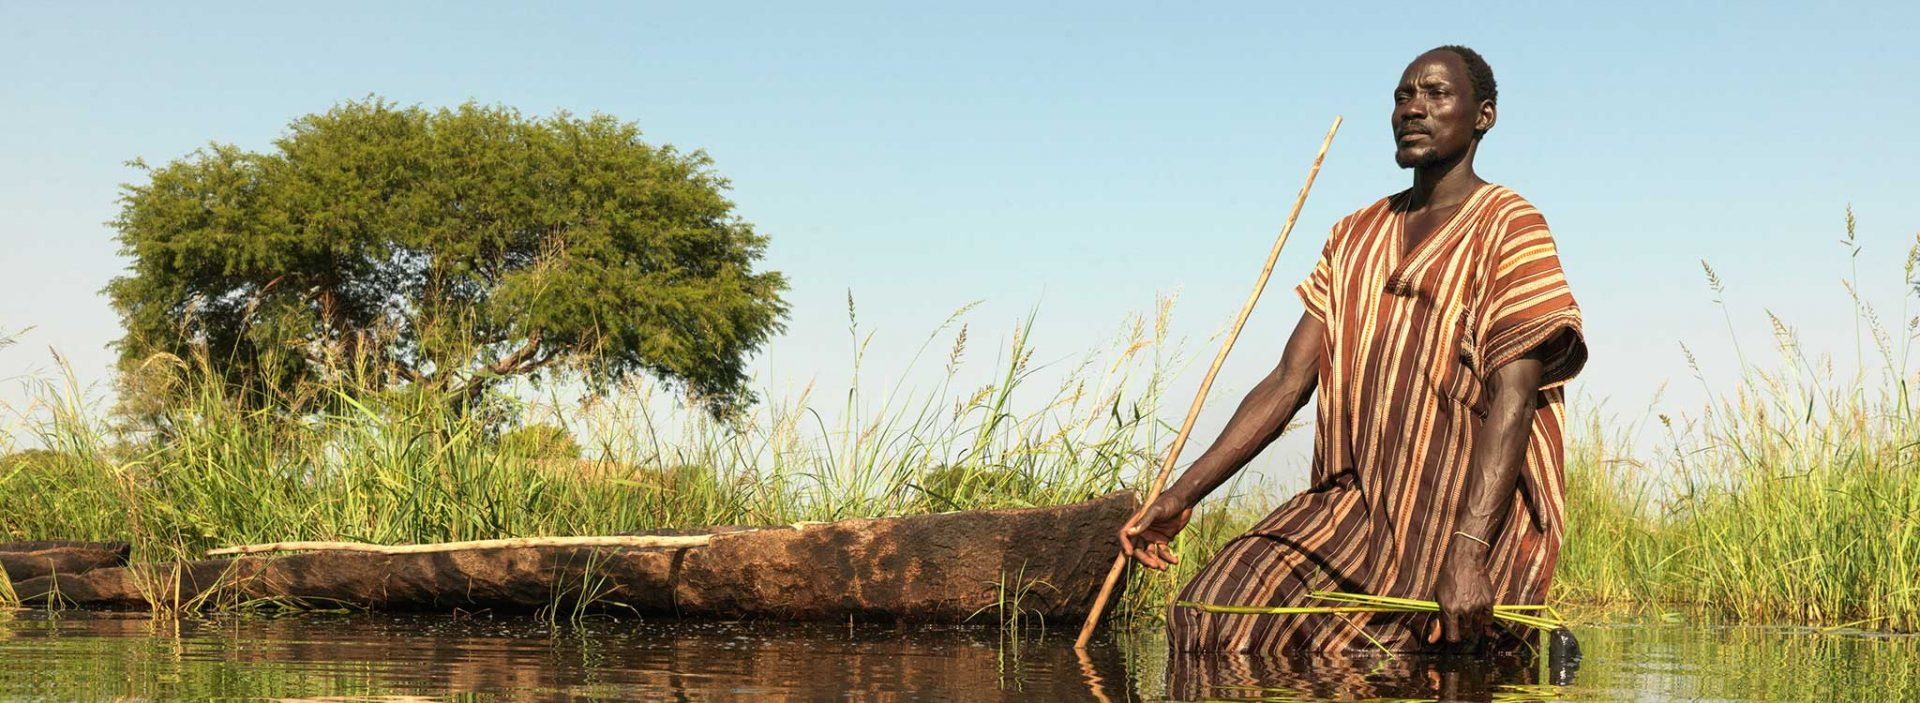 Gai tries to spear fish after his village in South Sudan is flooded.